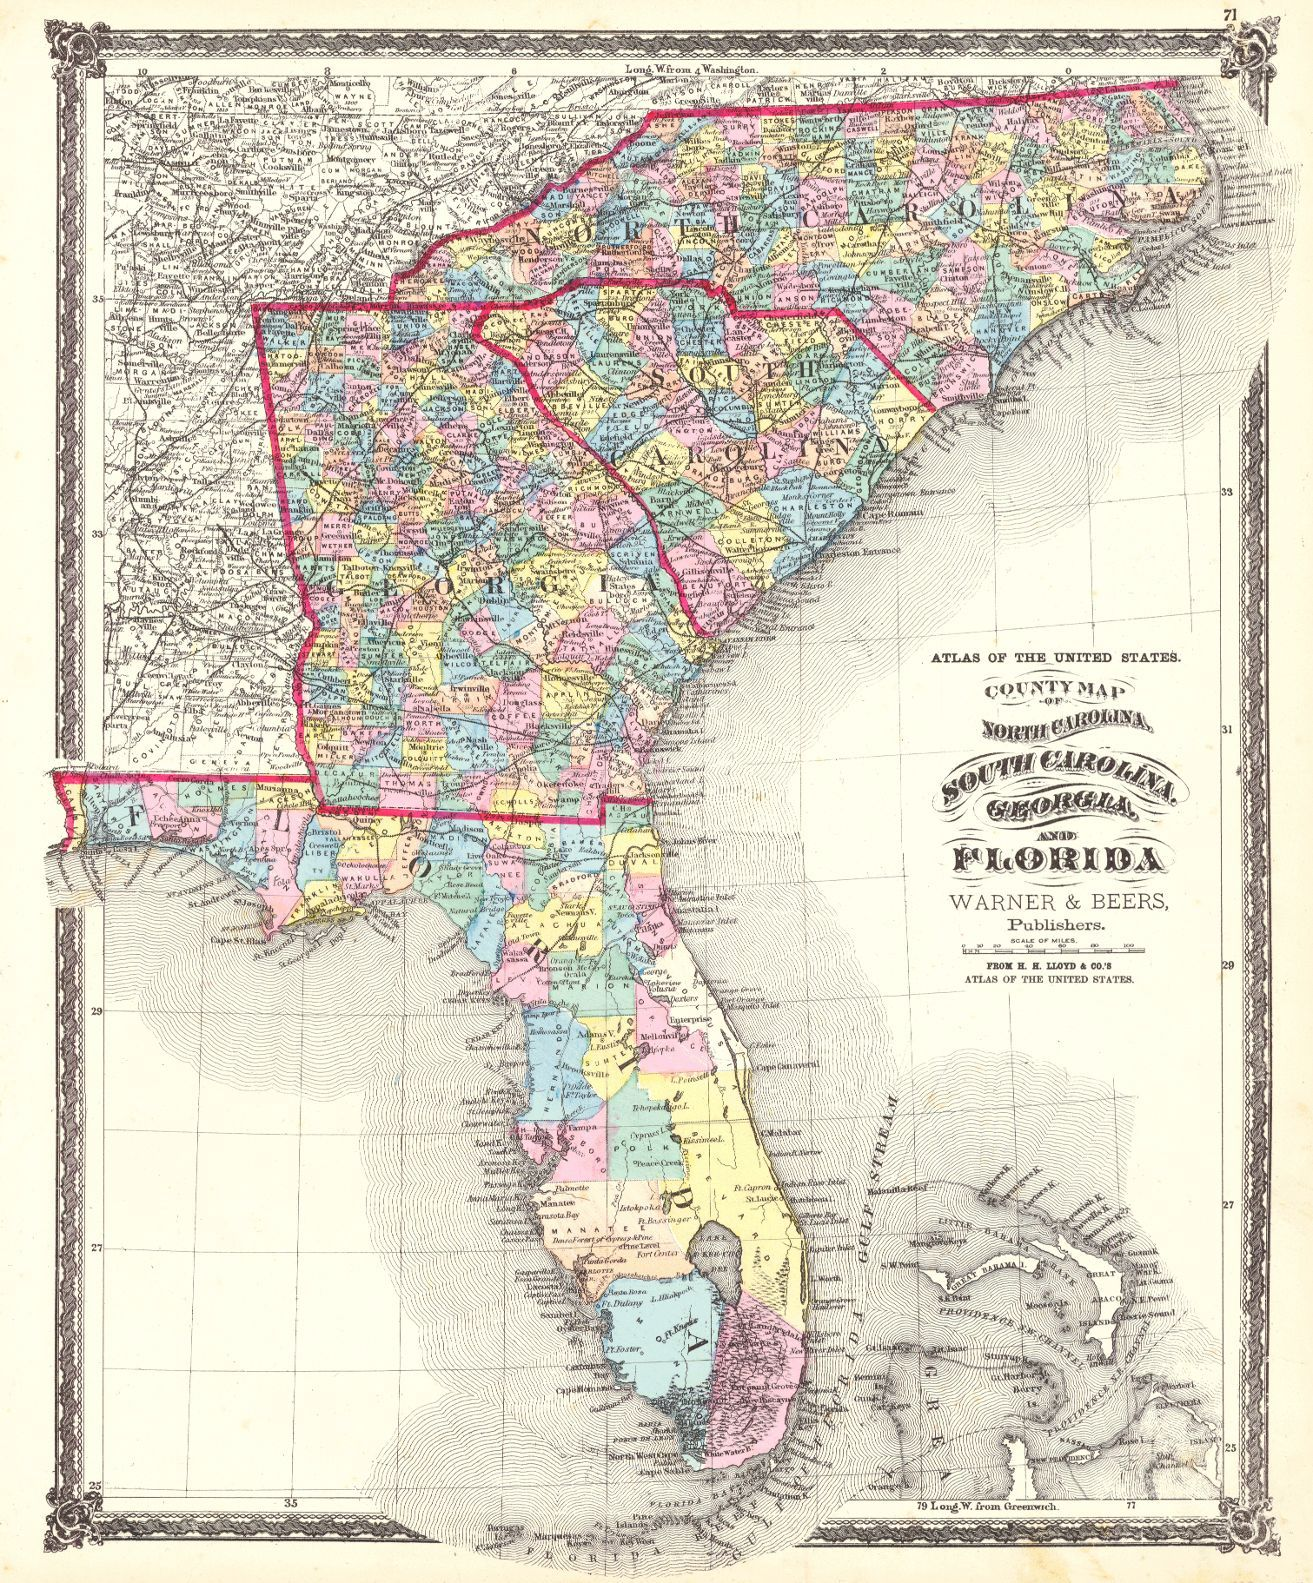 Atlas of the United States County Map of North Carolina South